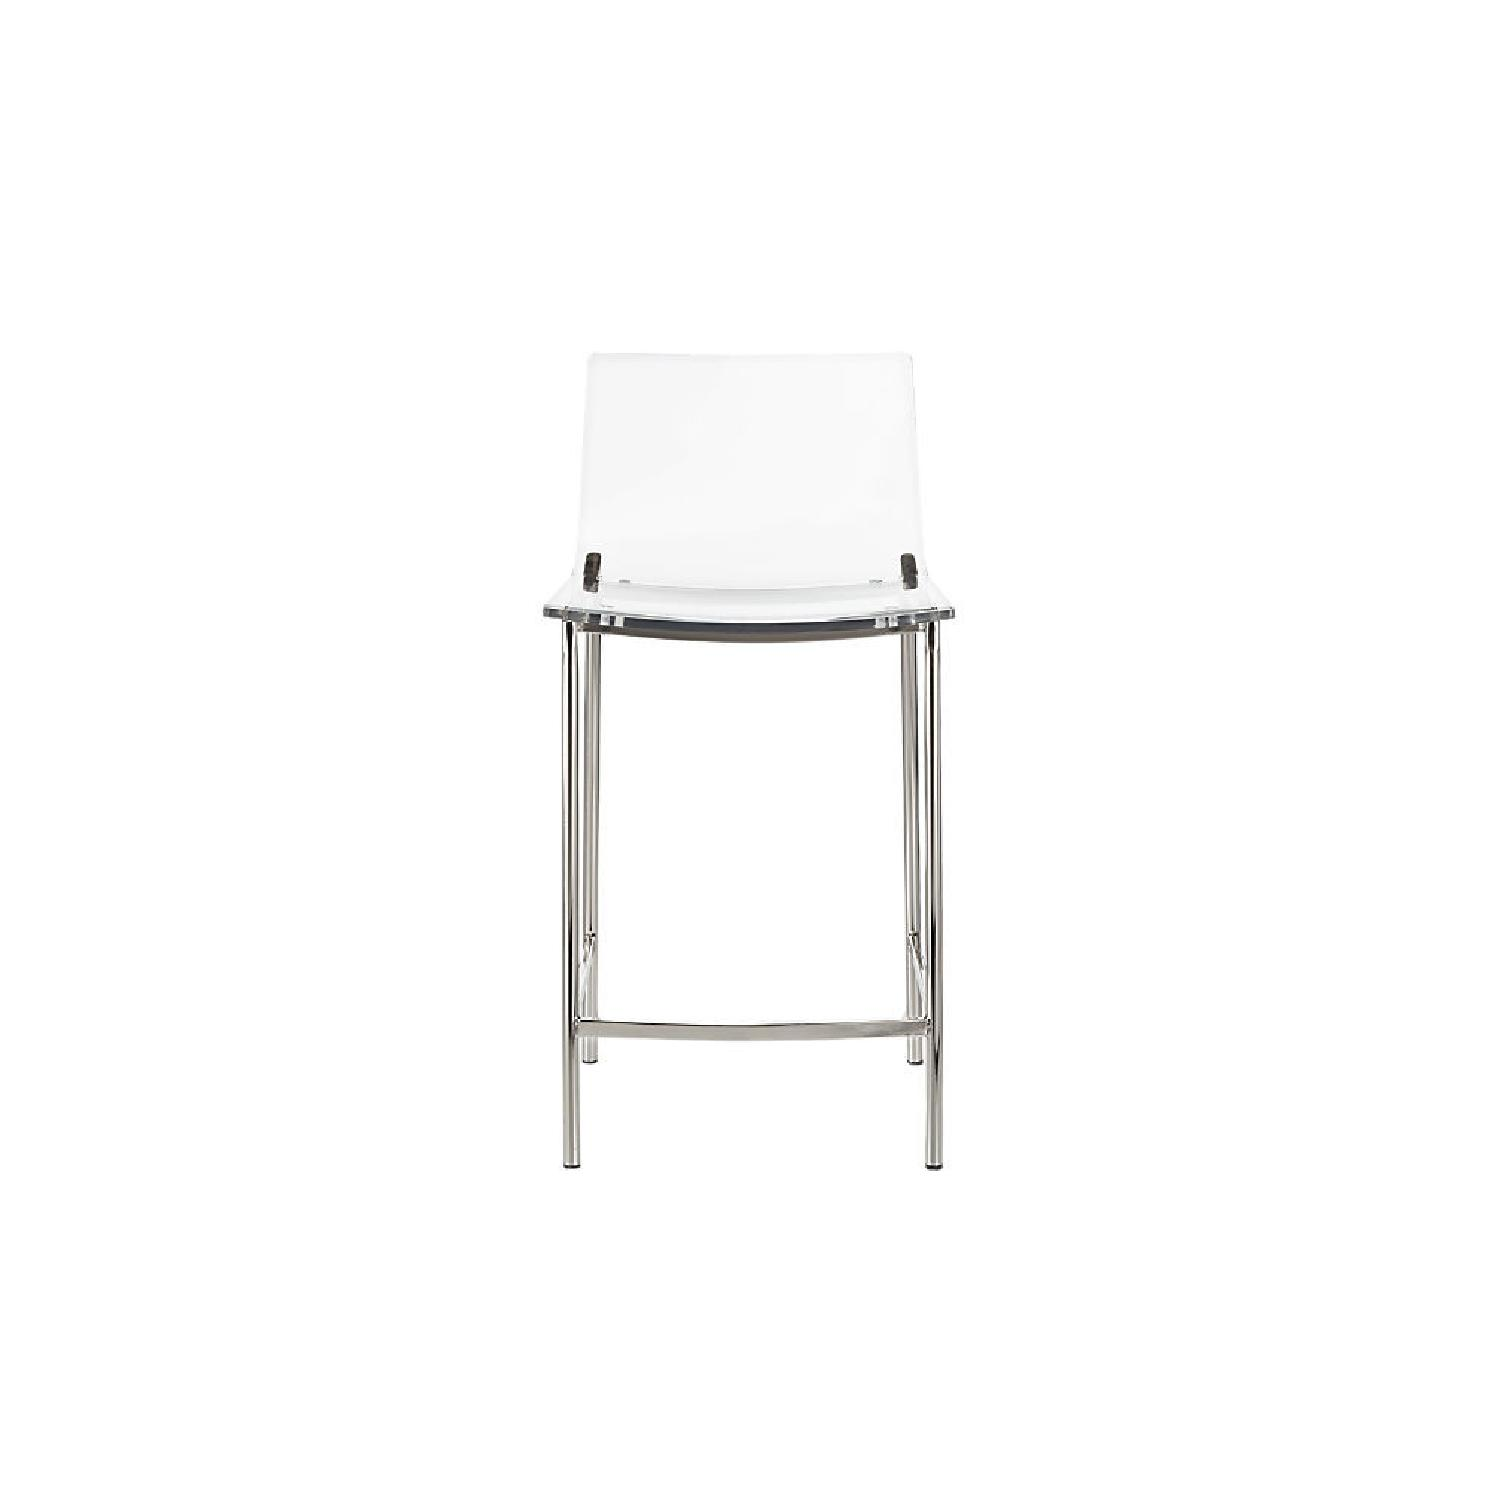 CB2 Clear Barstools in Nickel Finish - image-0